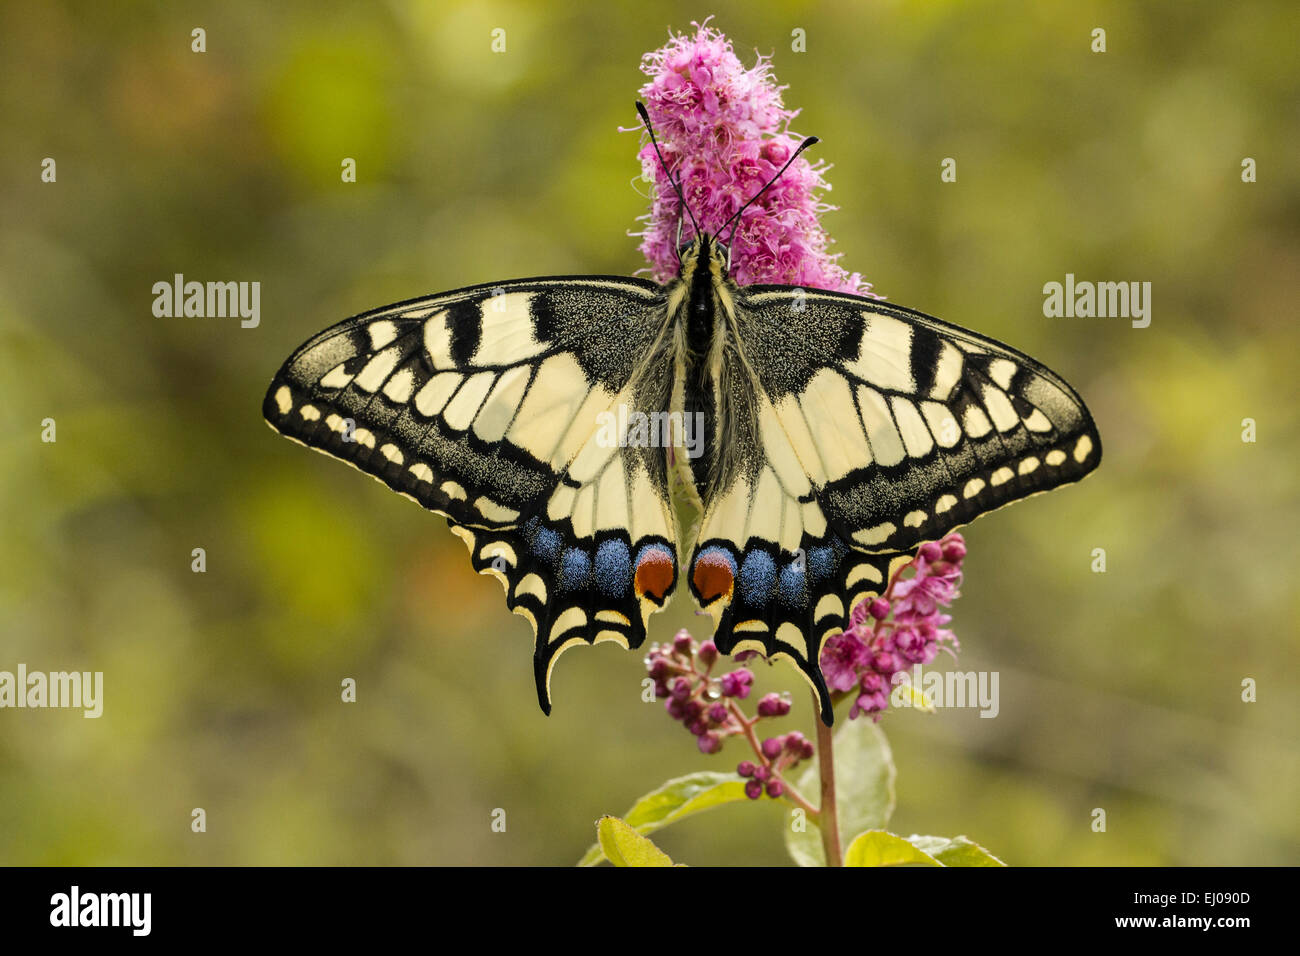 Animal, Butterfly, Insect, Lepidoptera, Old World swallowtail, Papilio machaon, Papilionidae, Swallowtail, Switzerland, - Stock Image